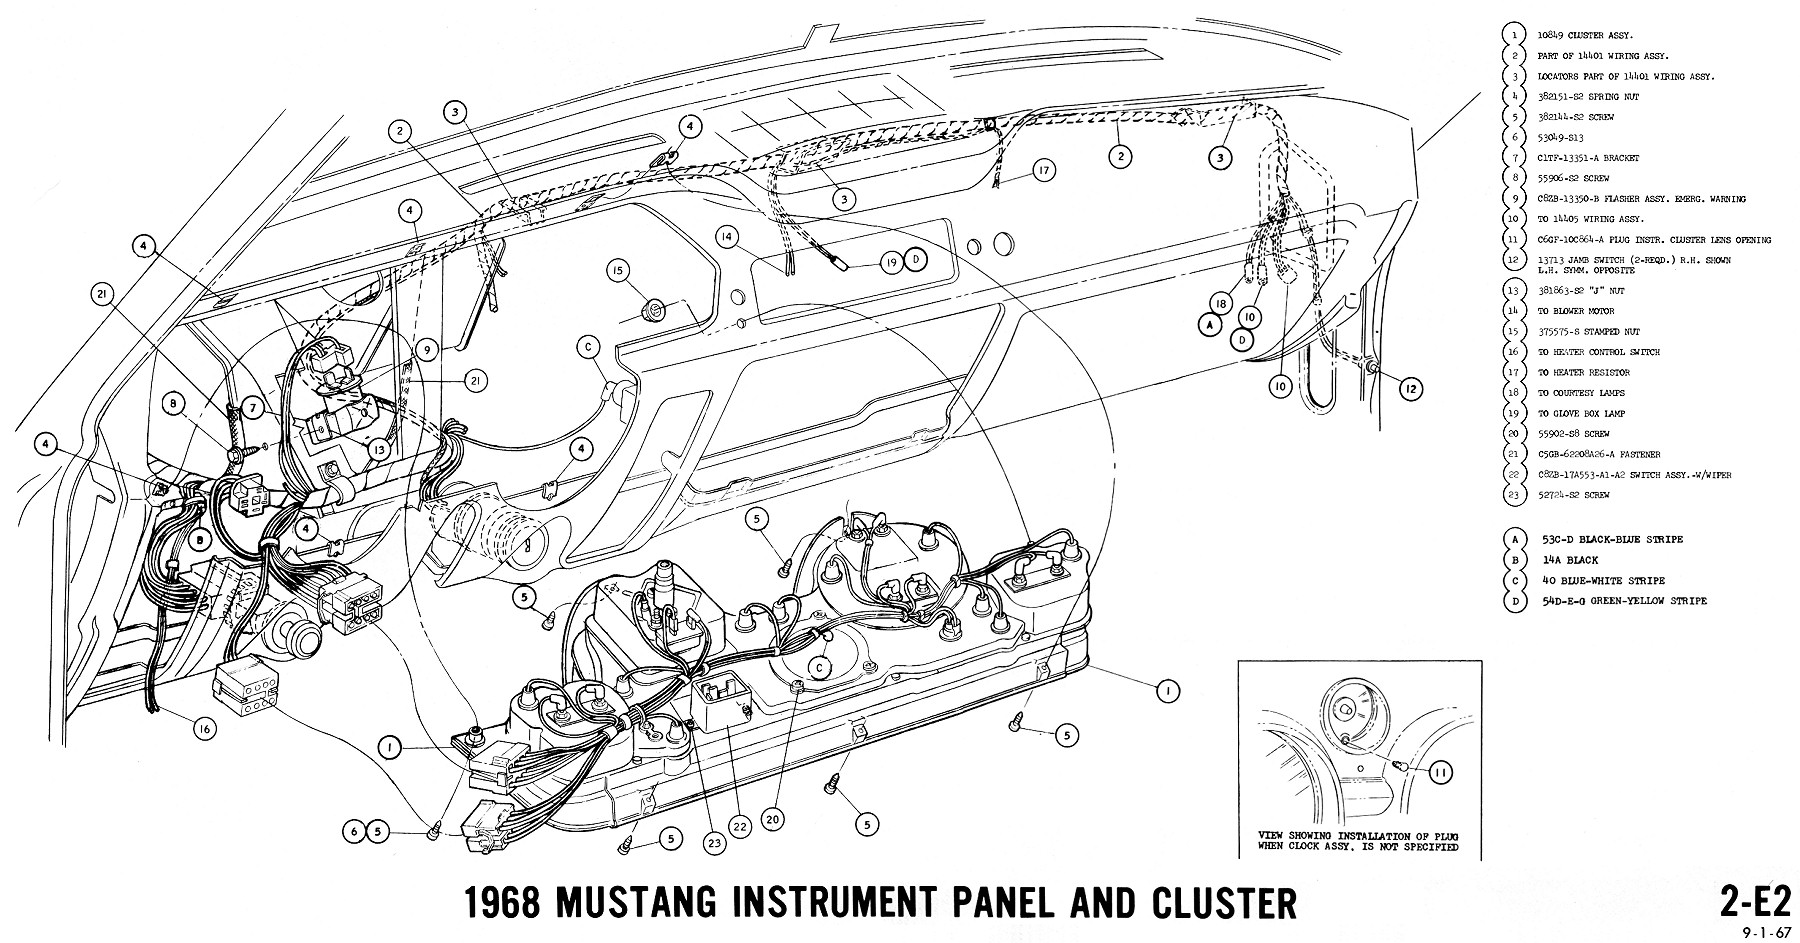 1968 mustang wiring diagram instruments 2 65 mustang dash wiring diagram 1965 ford mustang wiring diagram 1966 mustang fuse box diagram at bayanpartner.co